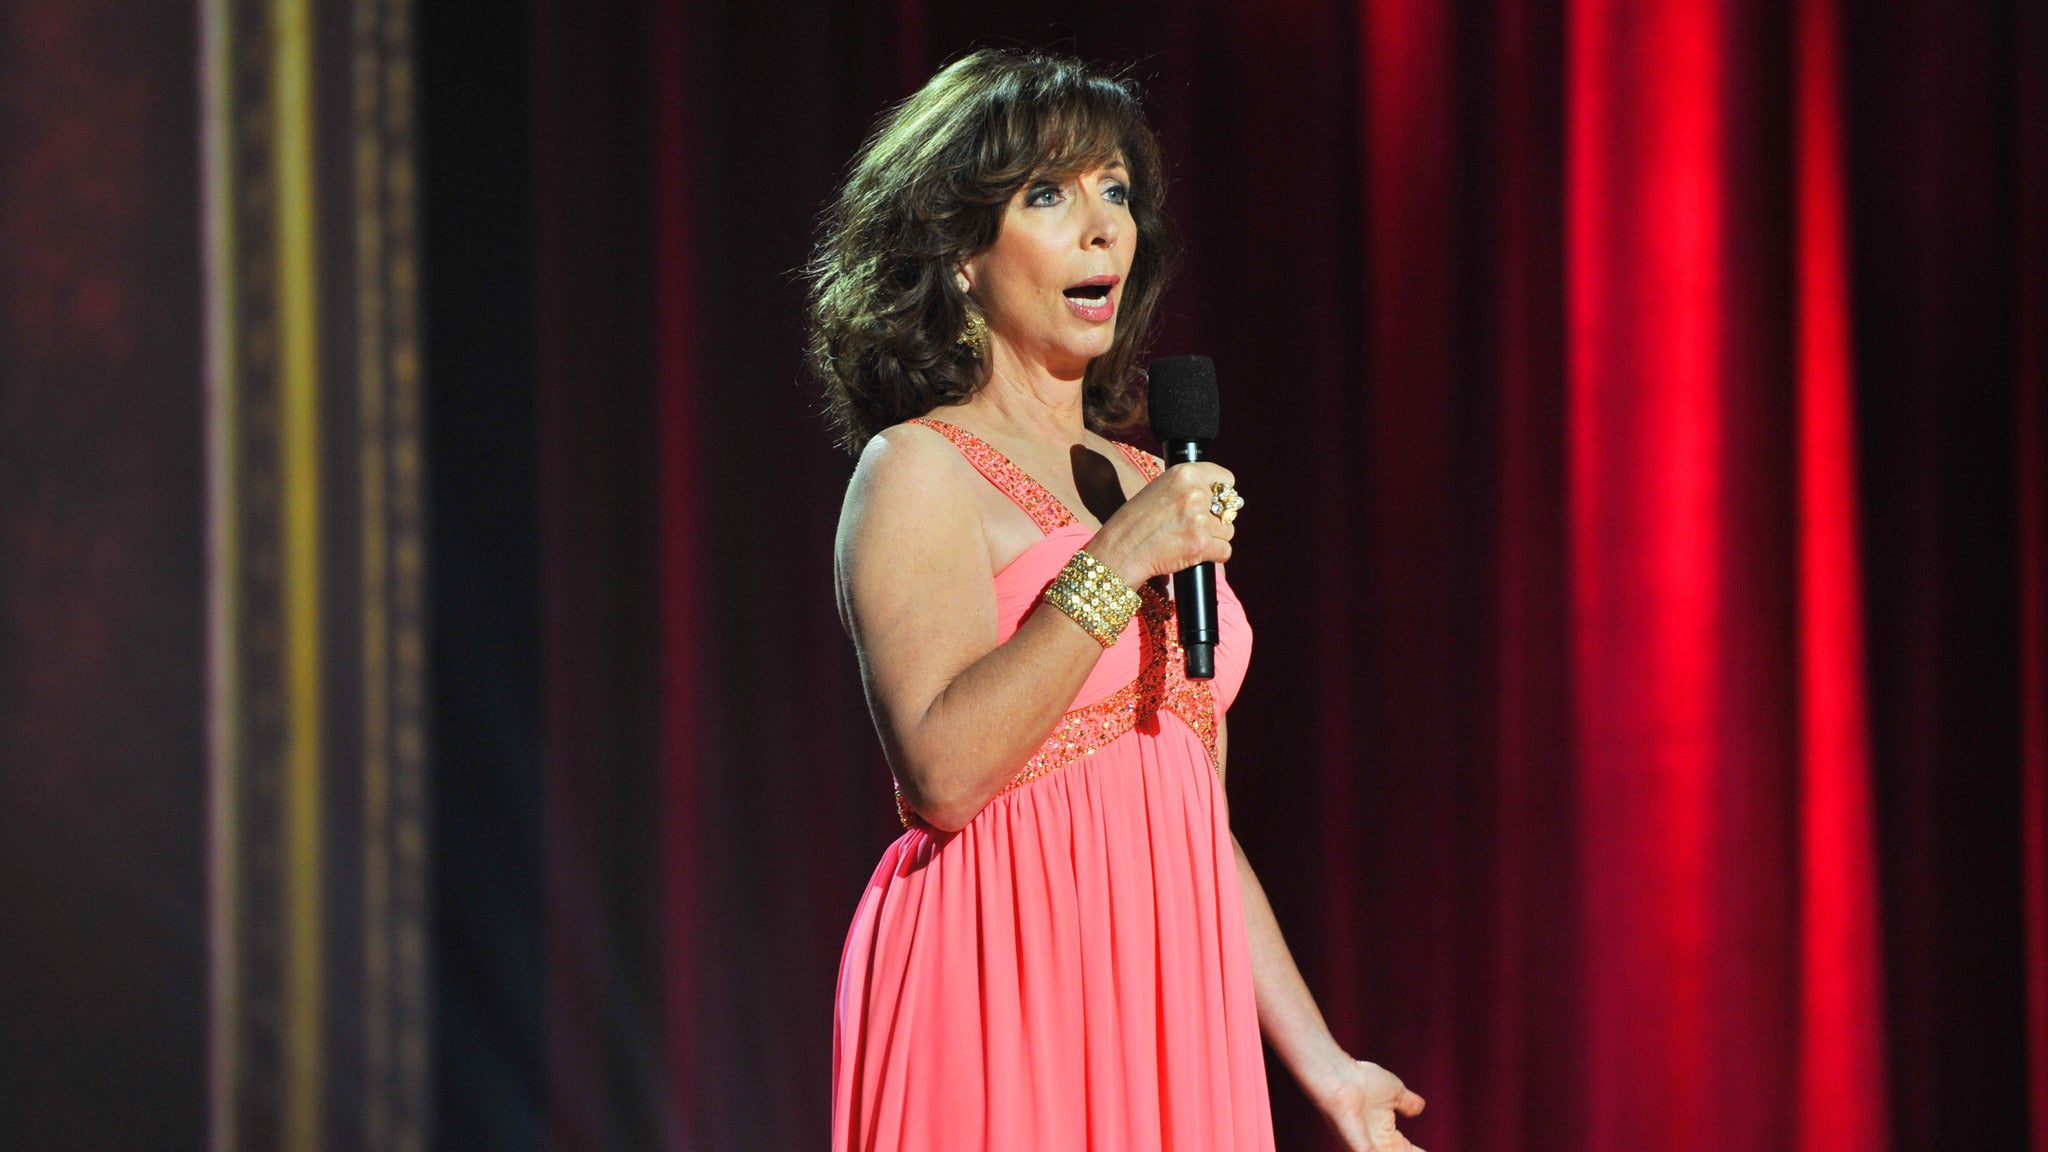 Civic Arts Plaza presents Rita Rudner